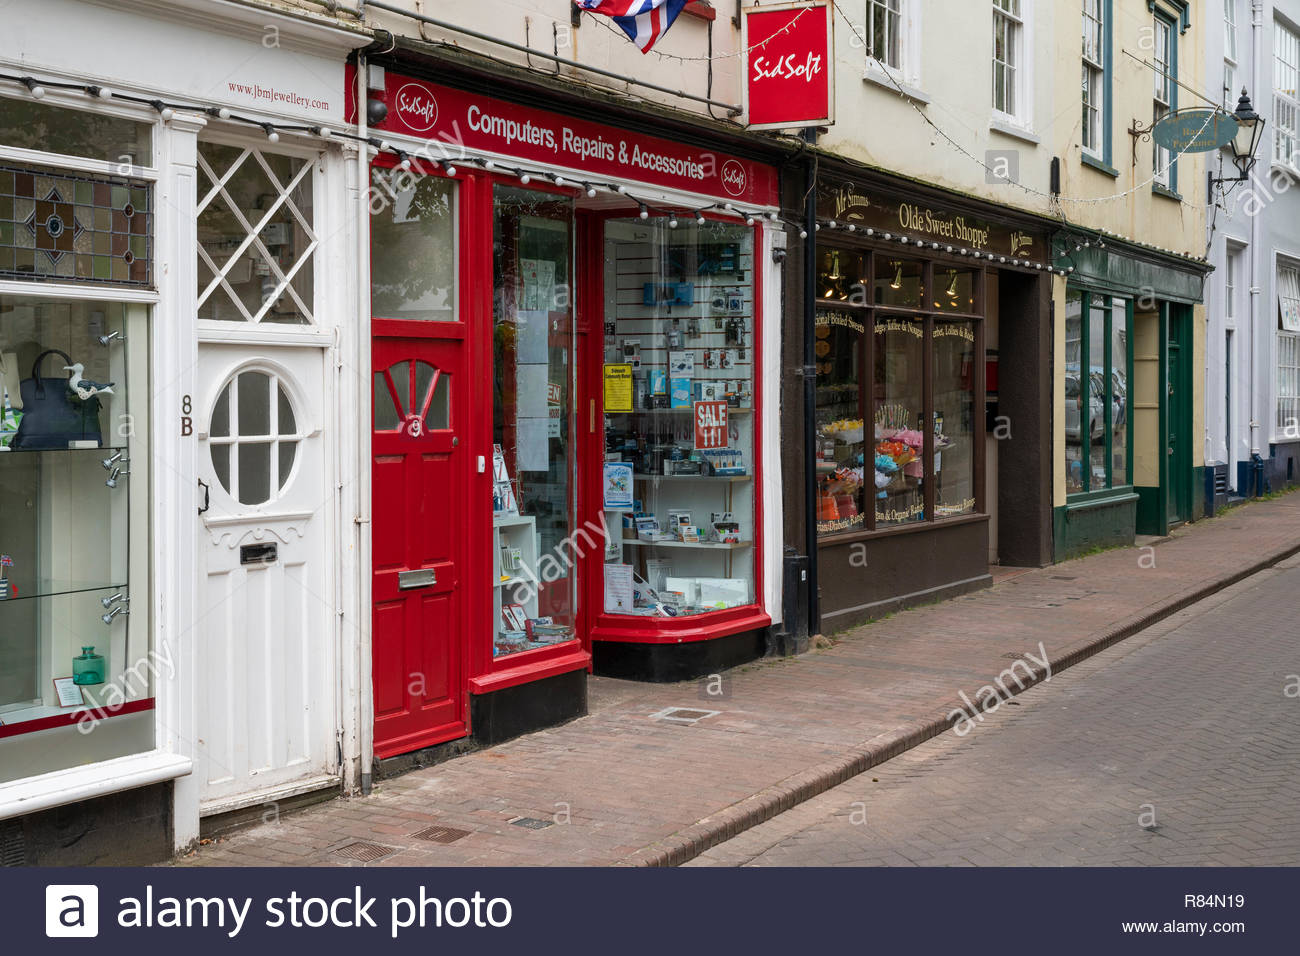 Shops in Church Street, Sidmouth, Devon, England, Britain, UK - Stock Image